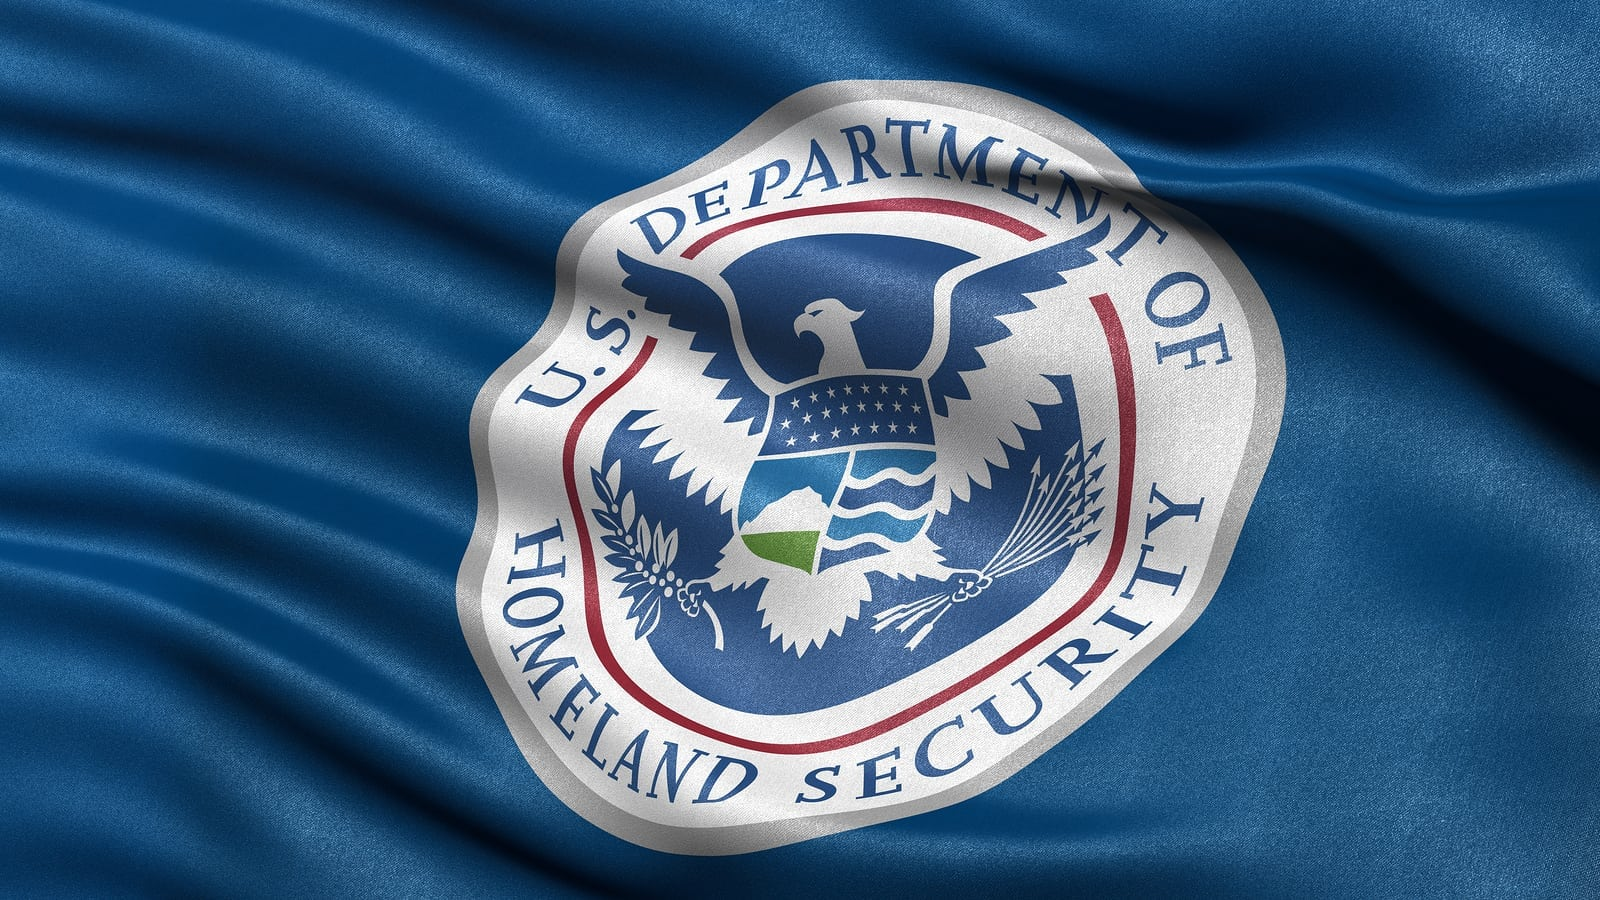 Homeland Security News: DHS Secretary Kirstjen M. Nielsen to Travel to Mexico